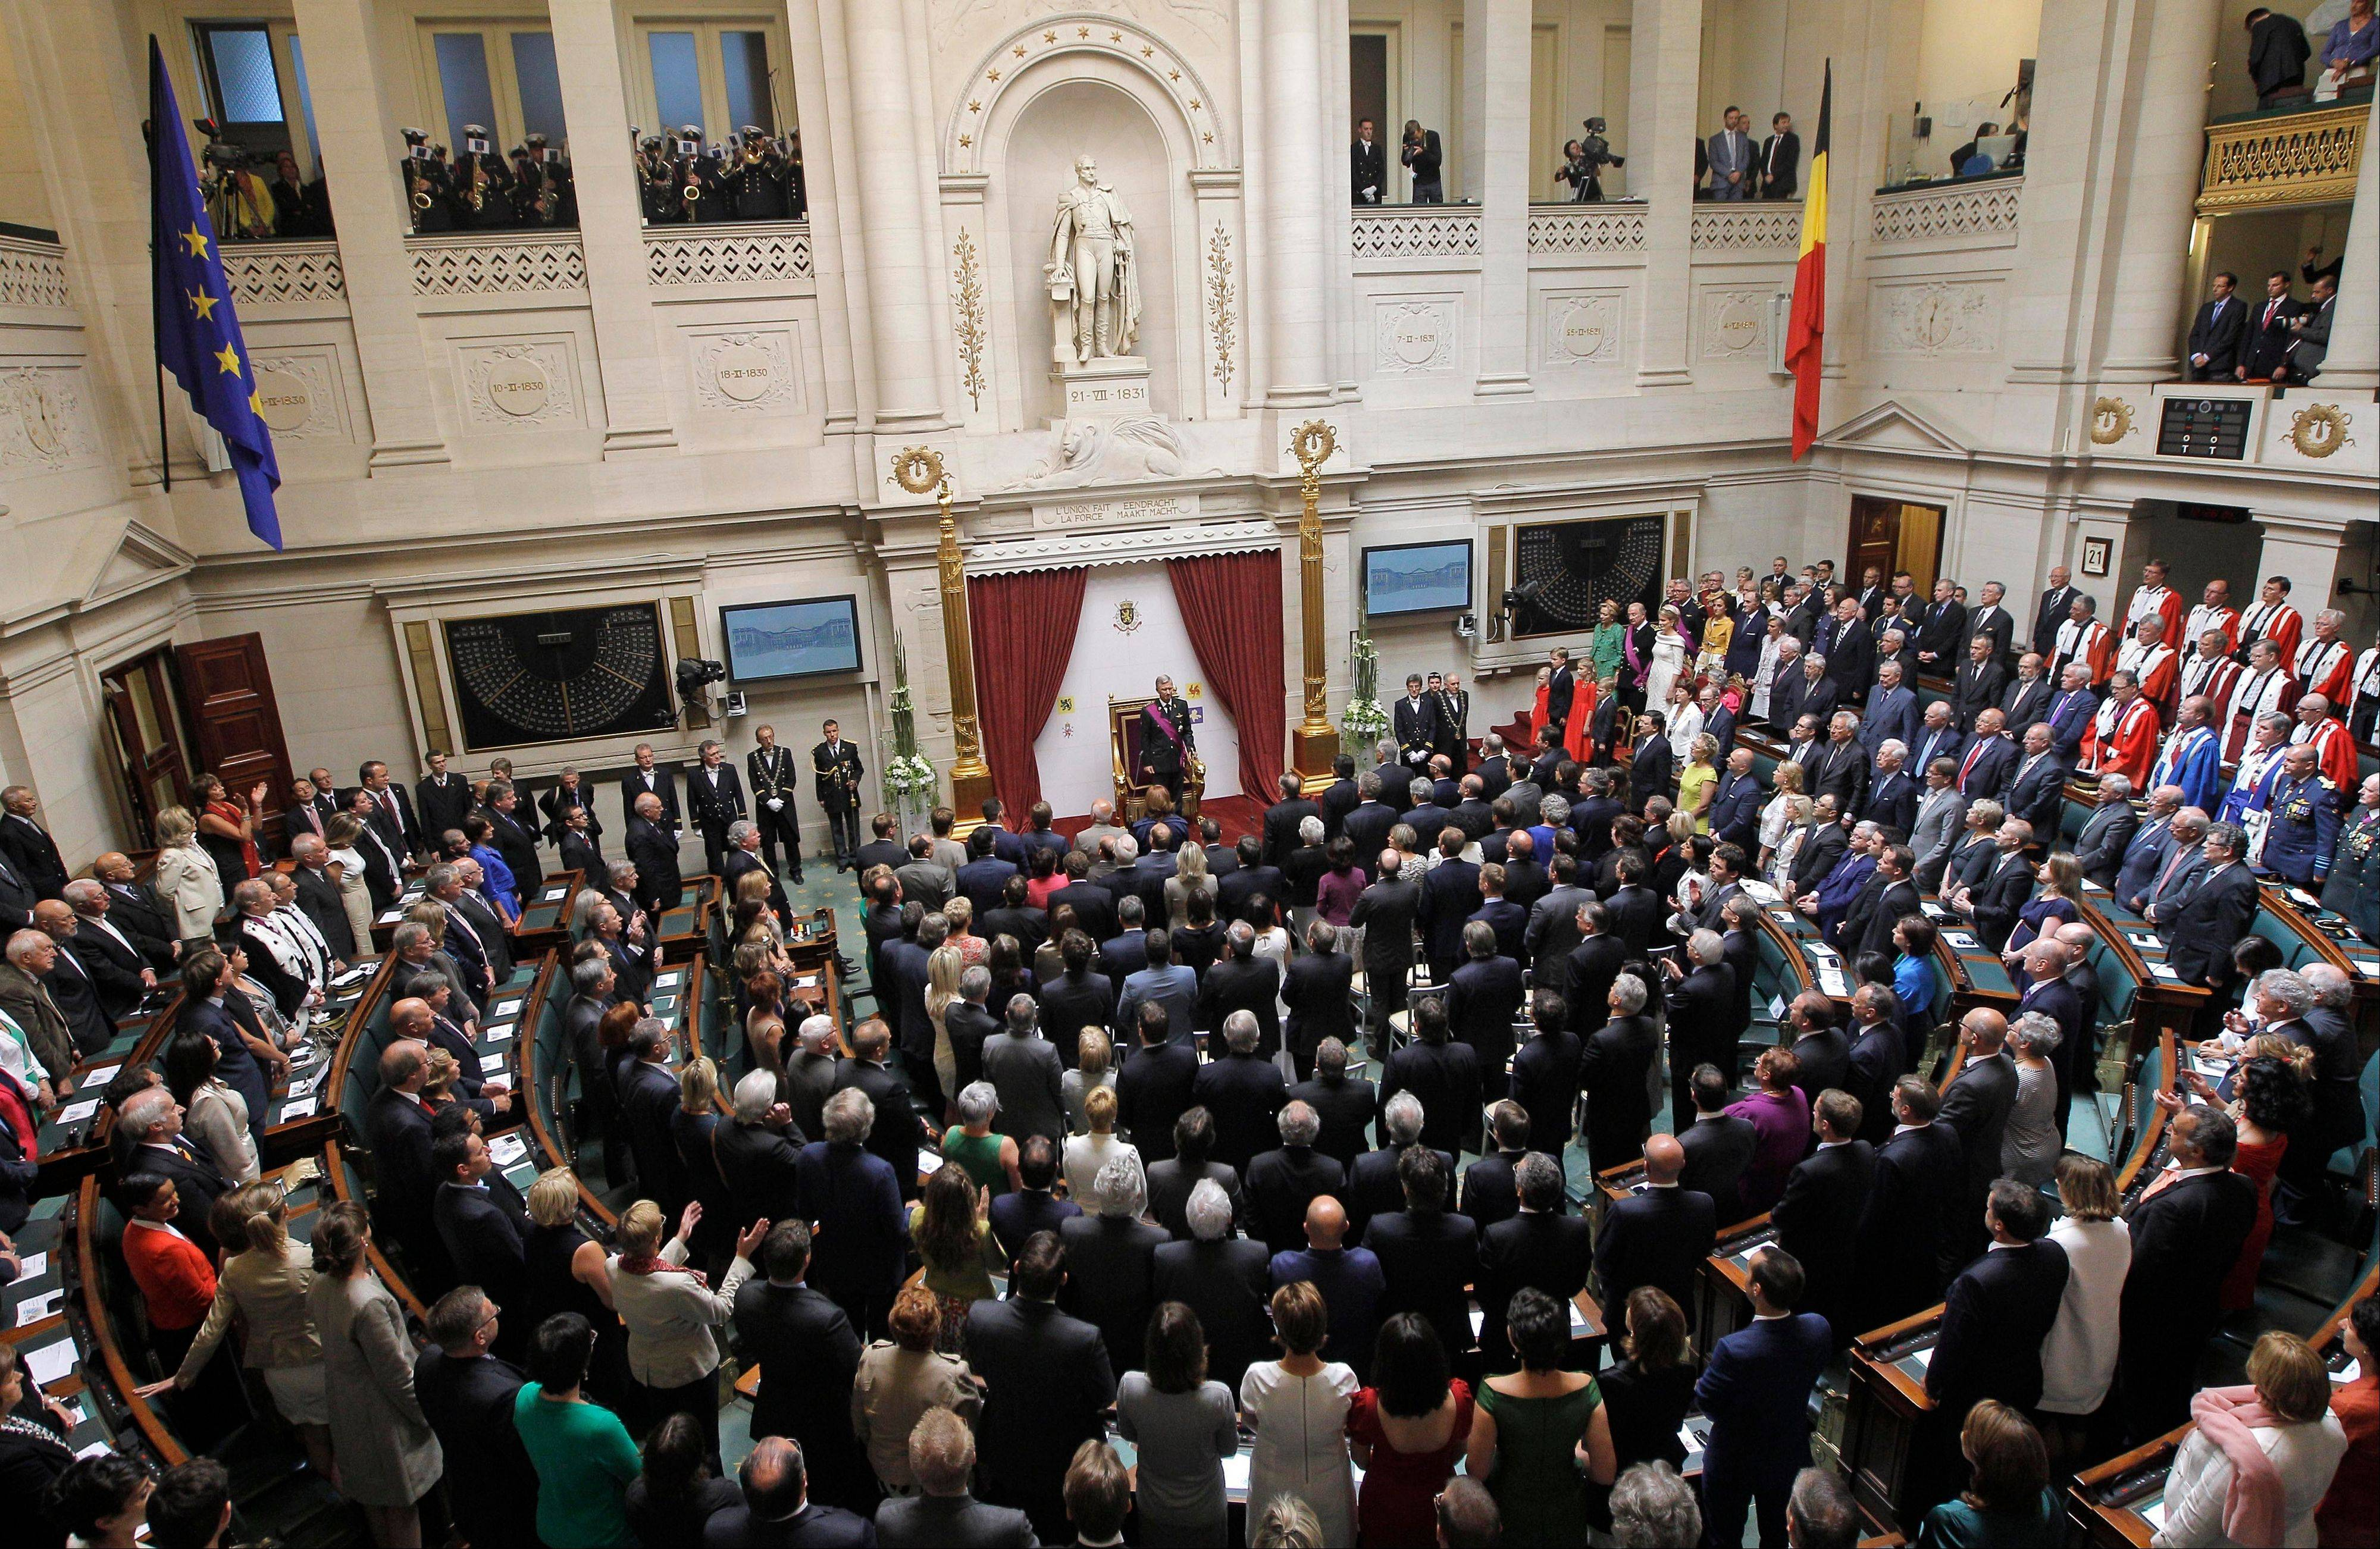 Belgium's Prince Philippe, center rear, prepares to take the oath in front of members of the parliament and senate at the Palace of the Nation in Brussels on Sunday, July 21, 2013. Philippe has taken the oath before parliament to become Belgium's seventh king after his father Albert II abdicated as the head of this fractured nation. Earlier Sunday, the 79-year-old Albert signed away his rights as the kingdom's largely ceremonial ruler at the royal palace in the presence of Prime Minister Elio Di Rupo, who holds the political power in this 183-year-old parliamentary democracy.